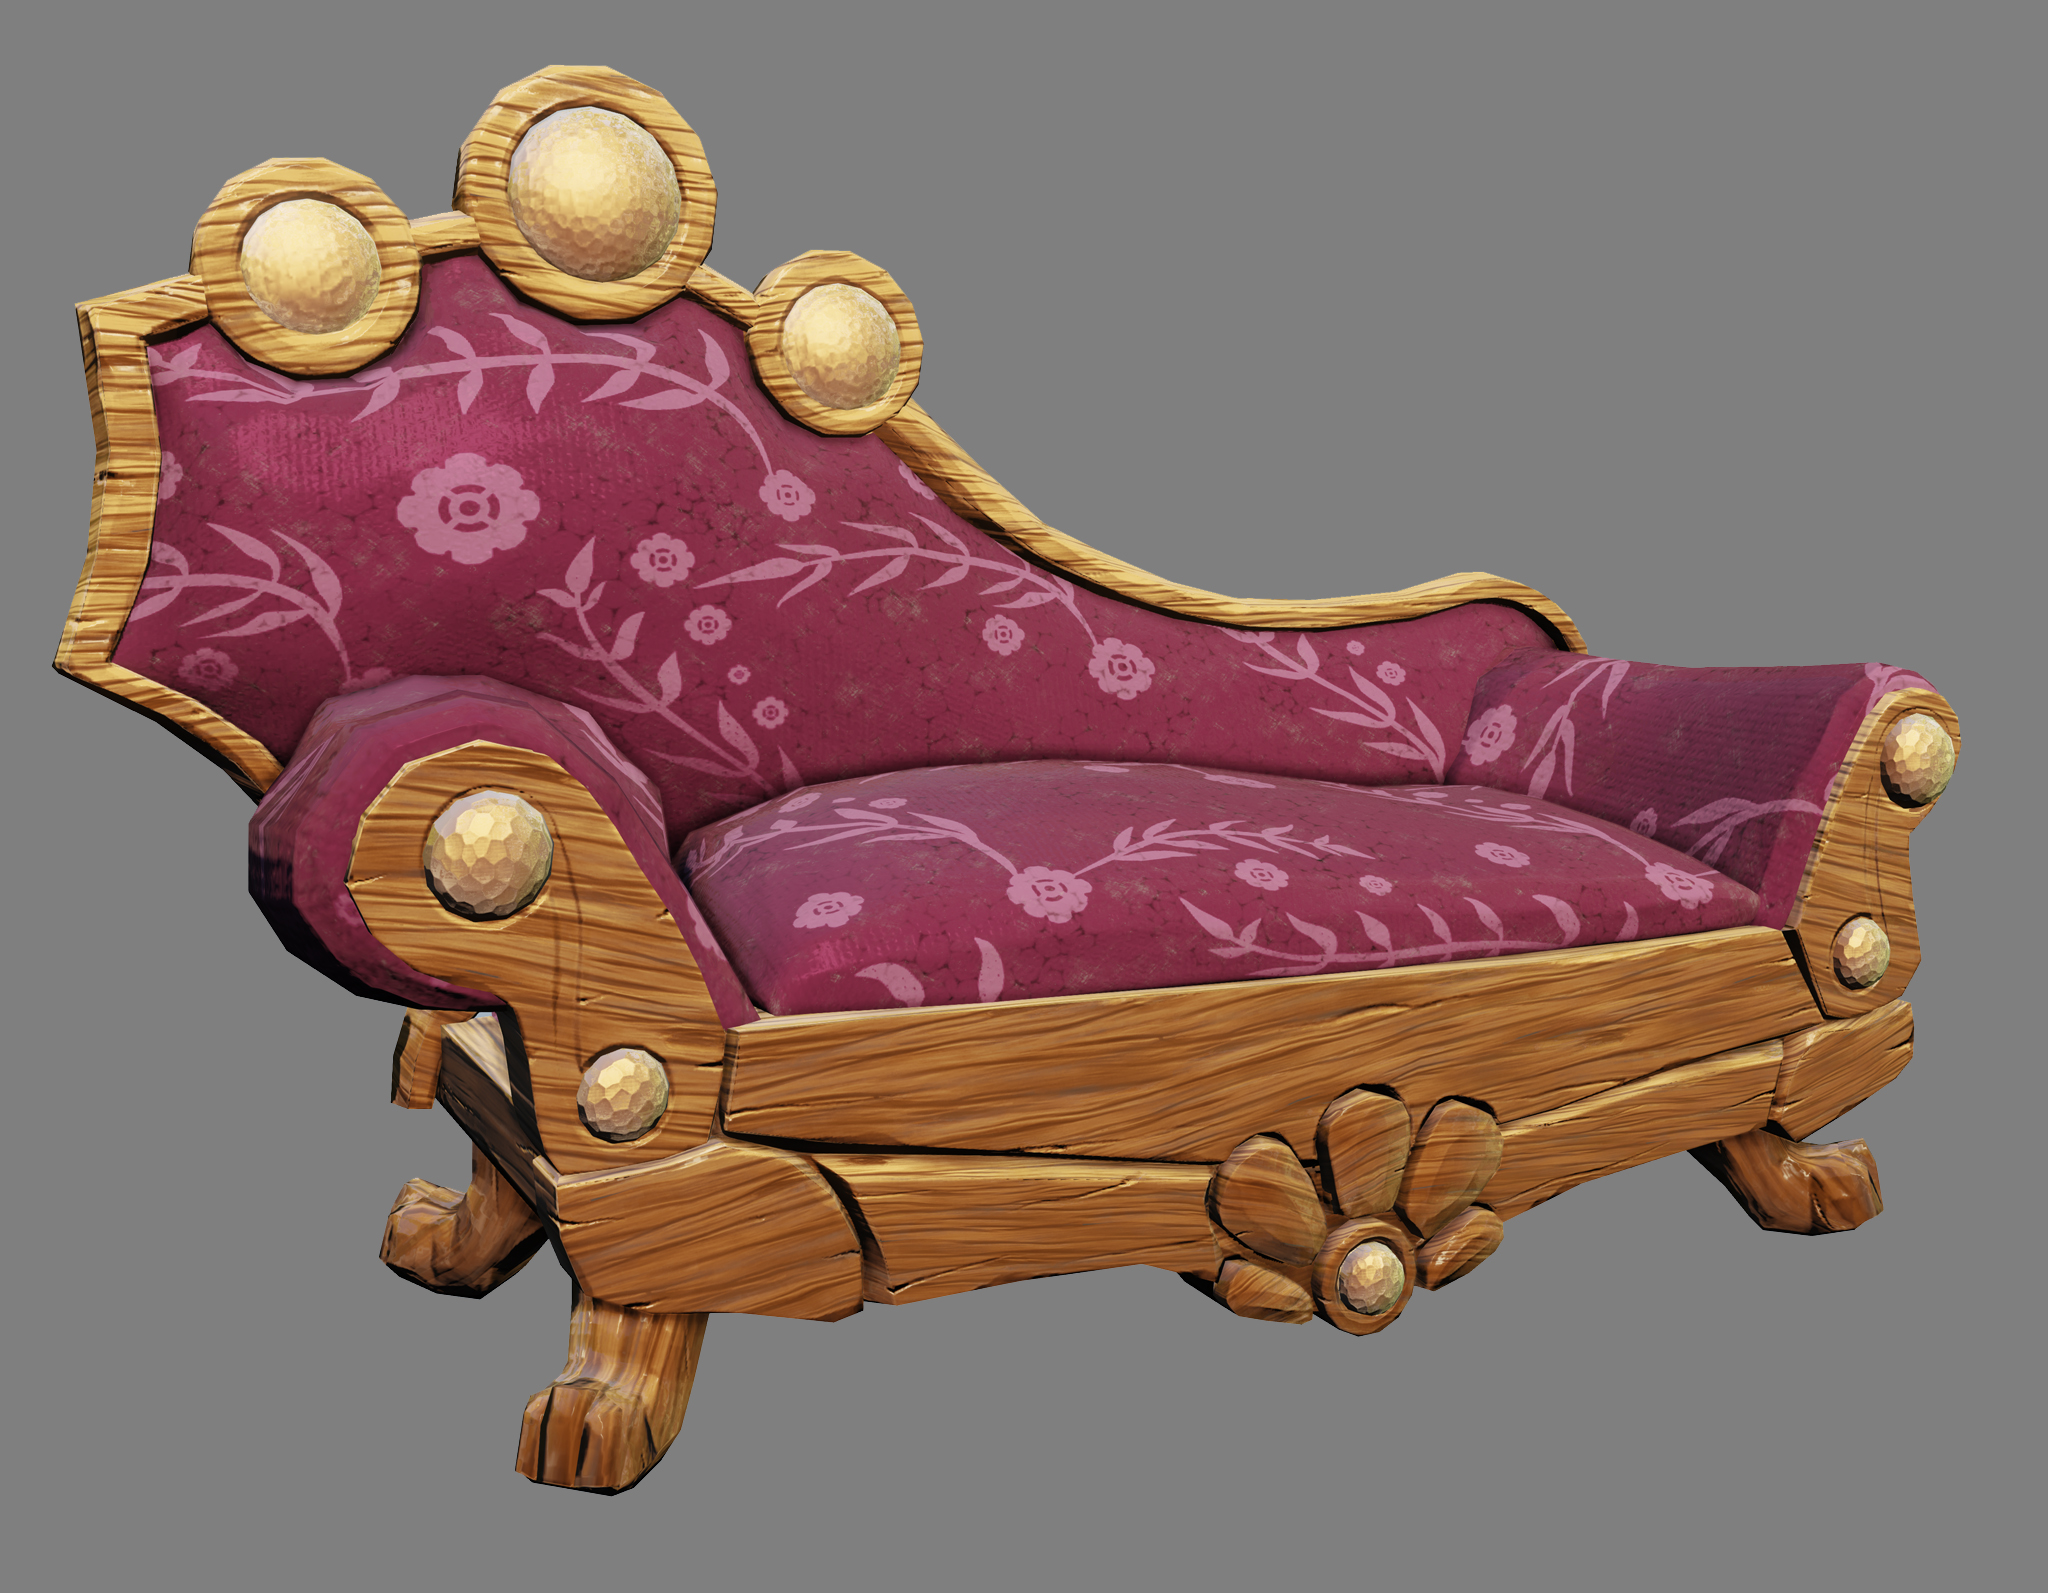 UDK Render 02 Fainting Sofa by dudealan2001 on DeviantArt